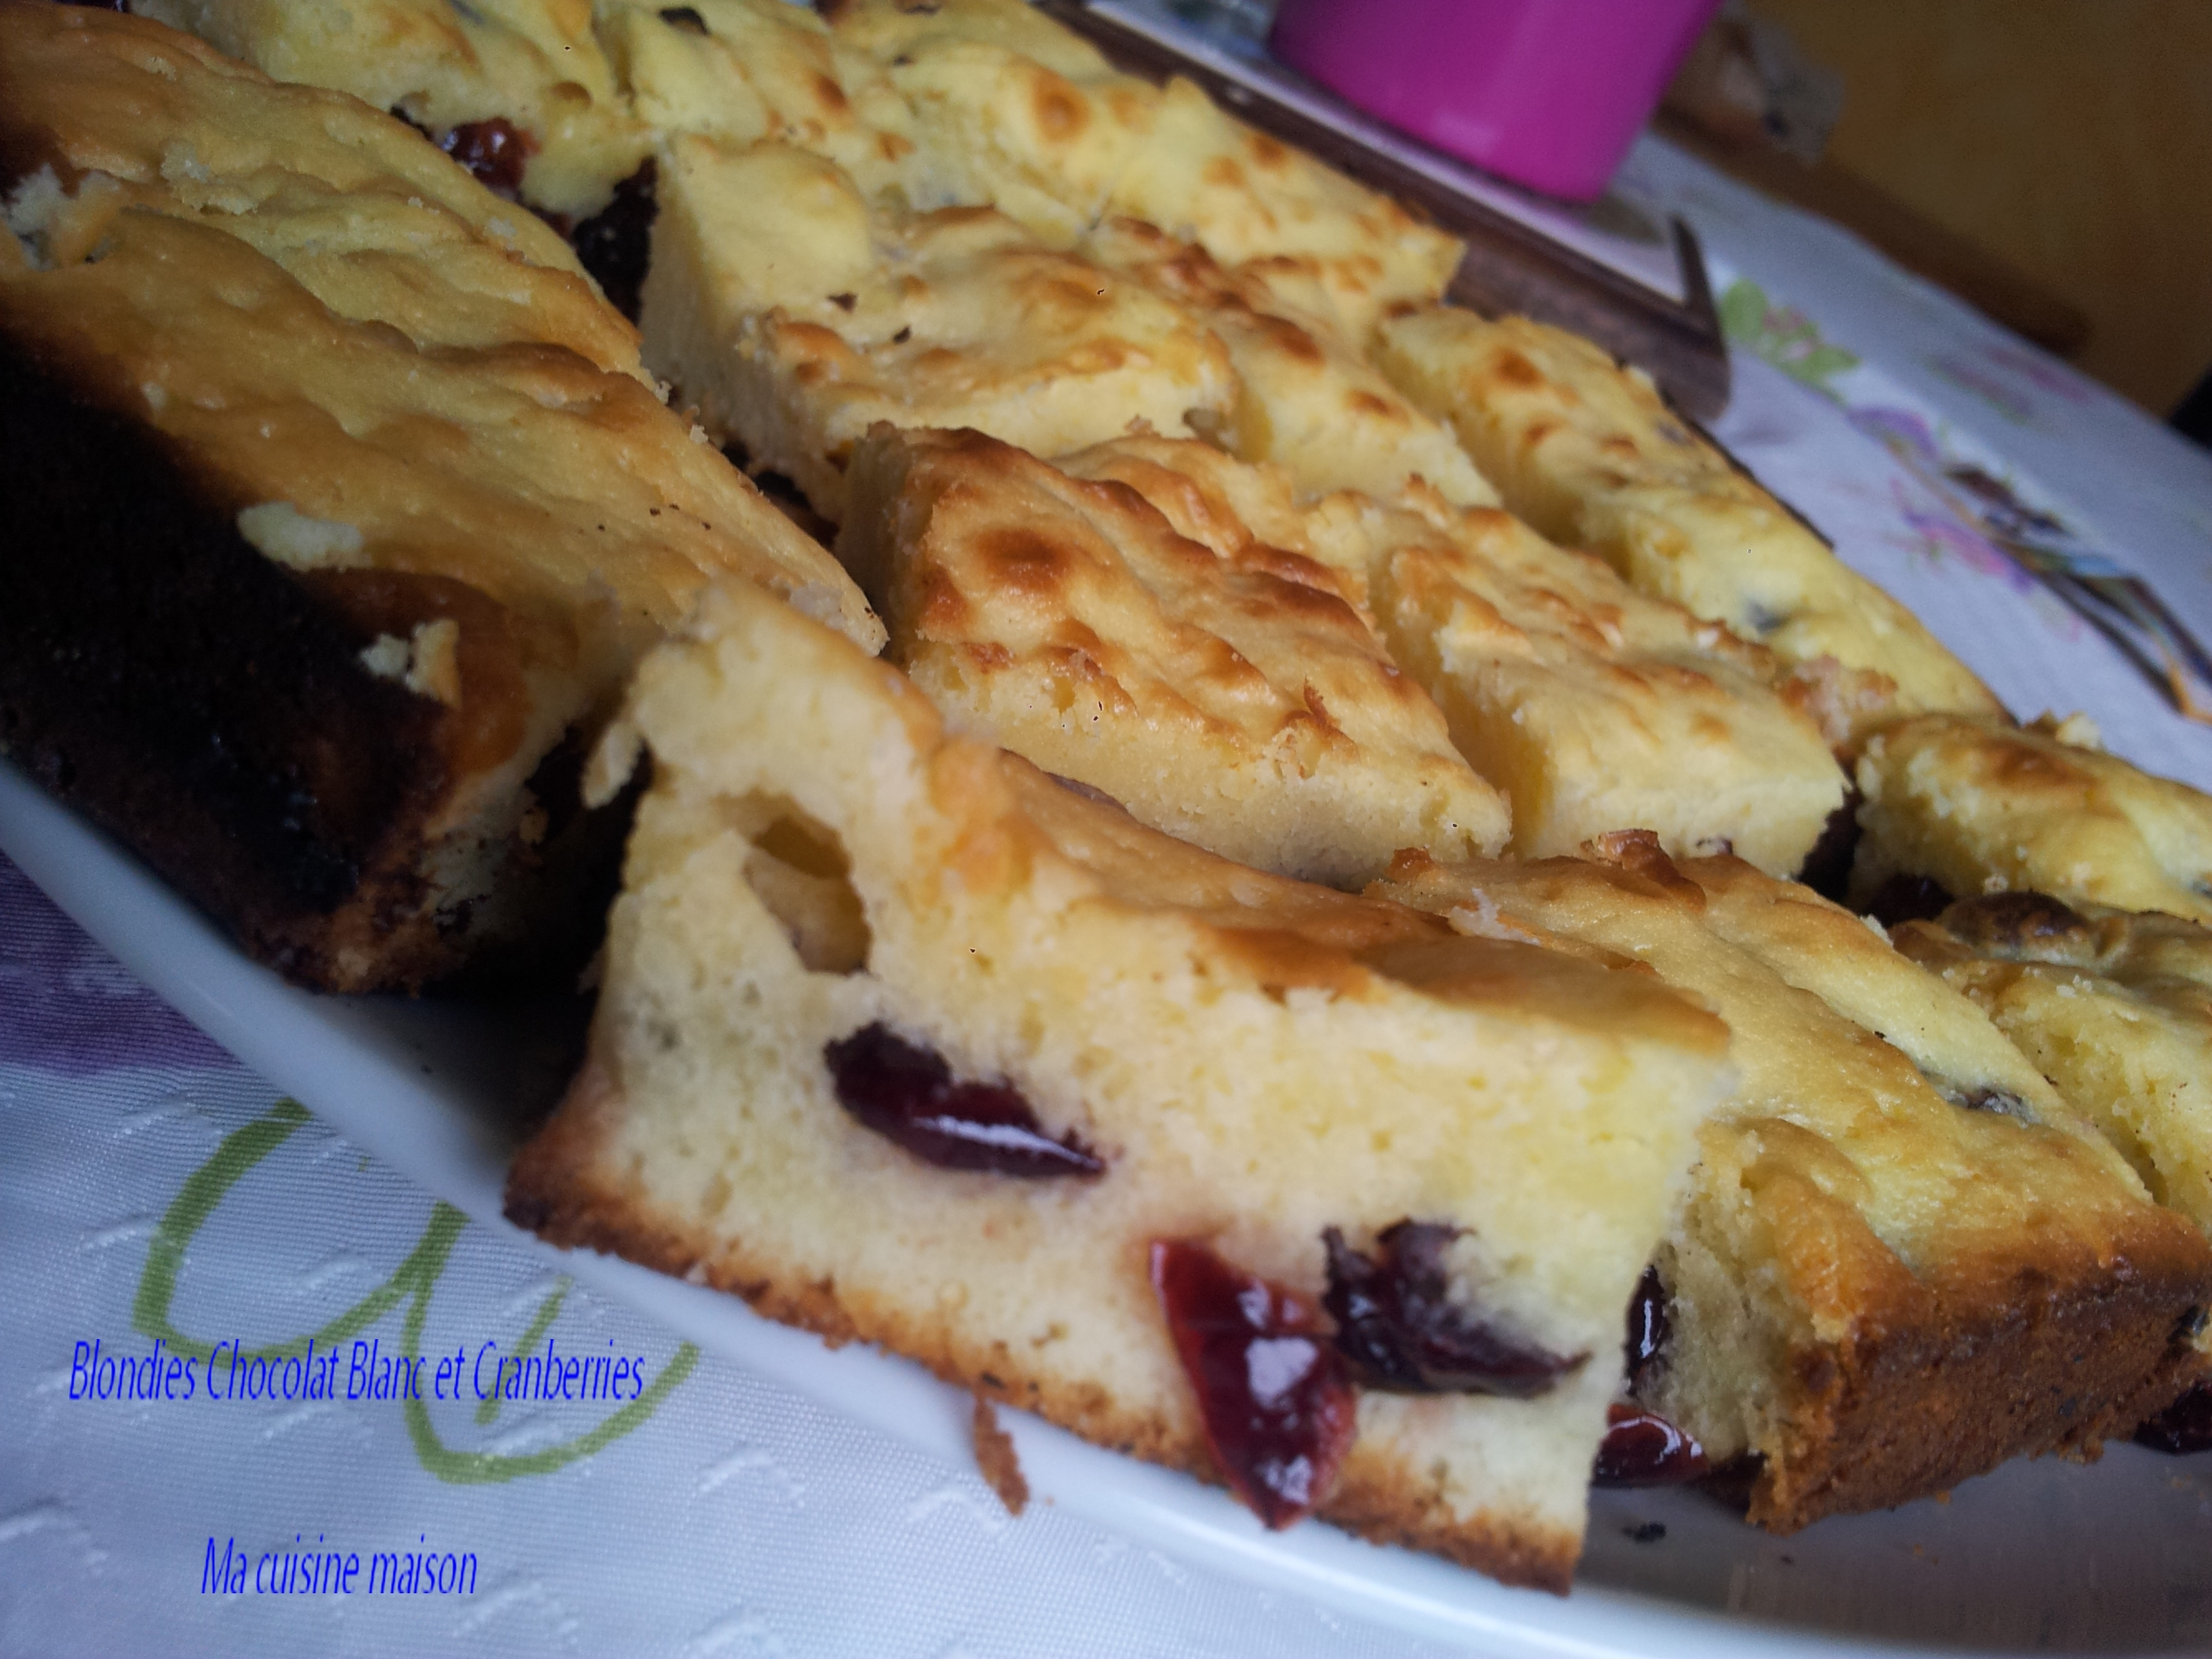 Blondie au Chocolat Blanc et Cranberries